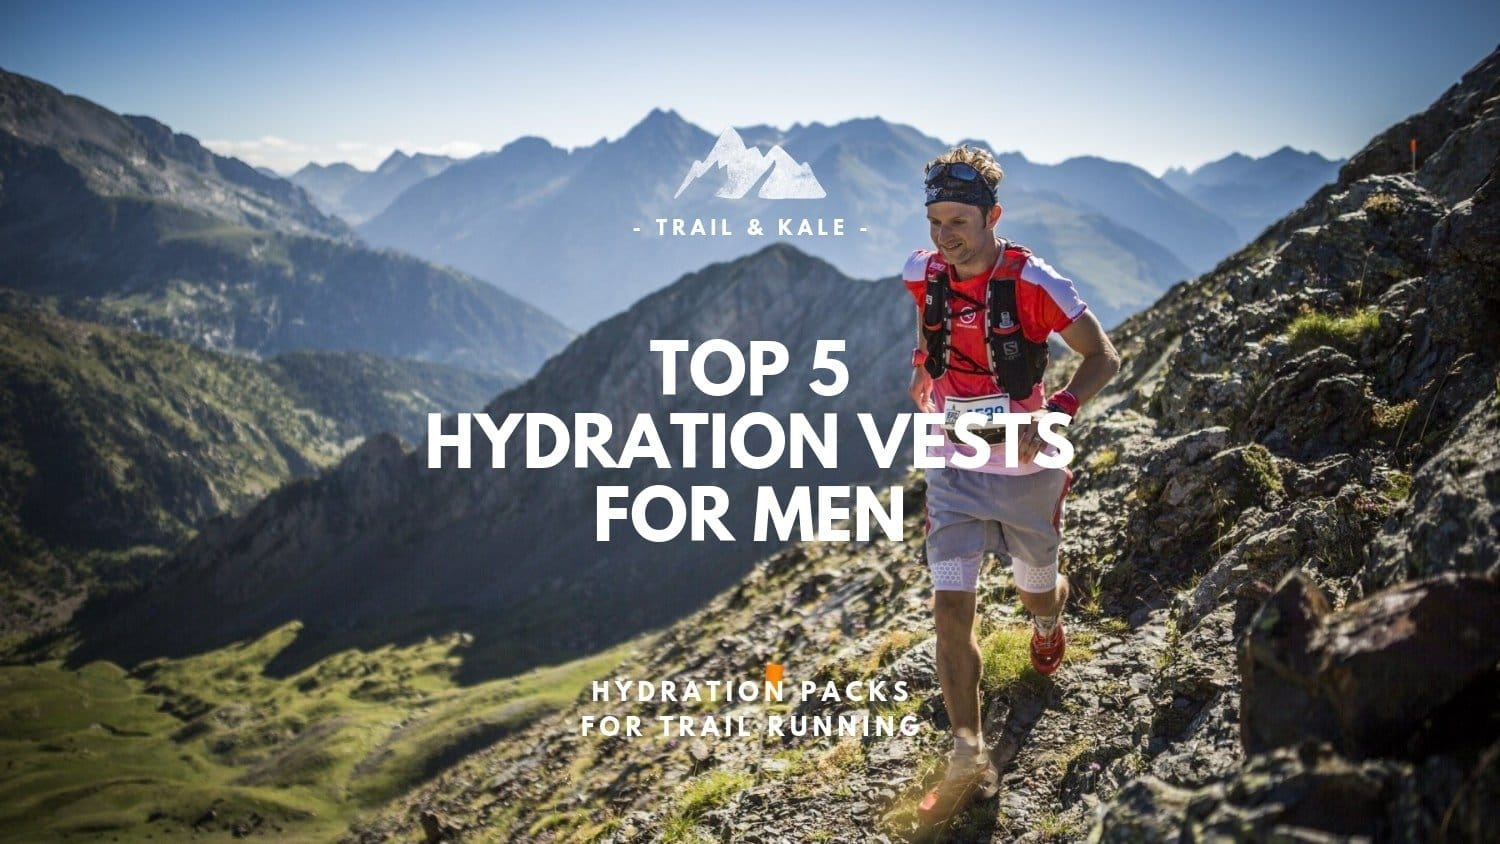 f86e699e4f 5 Top Hydration Packs For Men in 2019: Best Race Vests For Trail Running